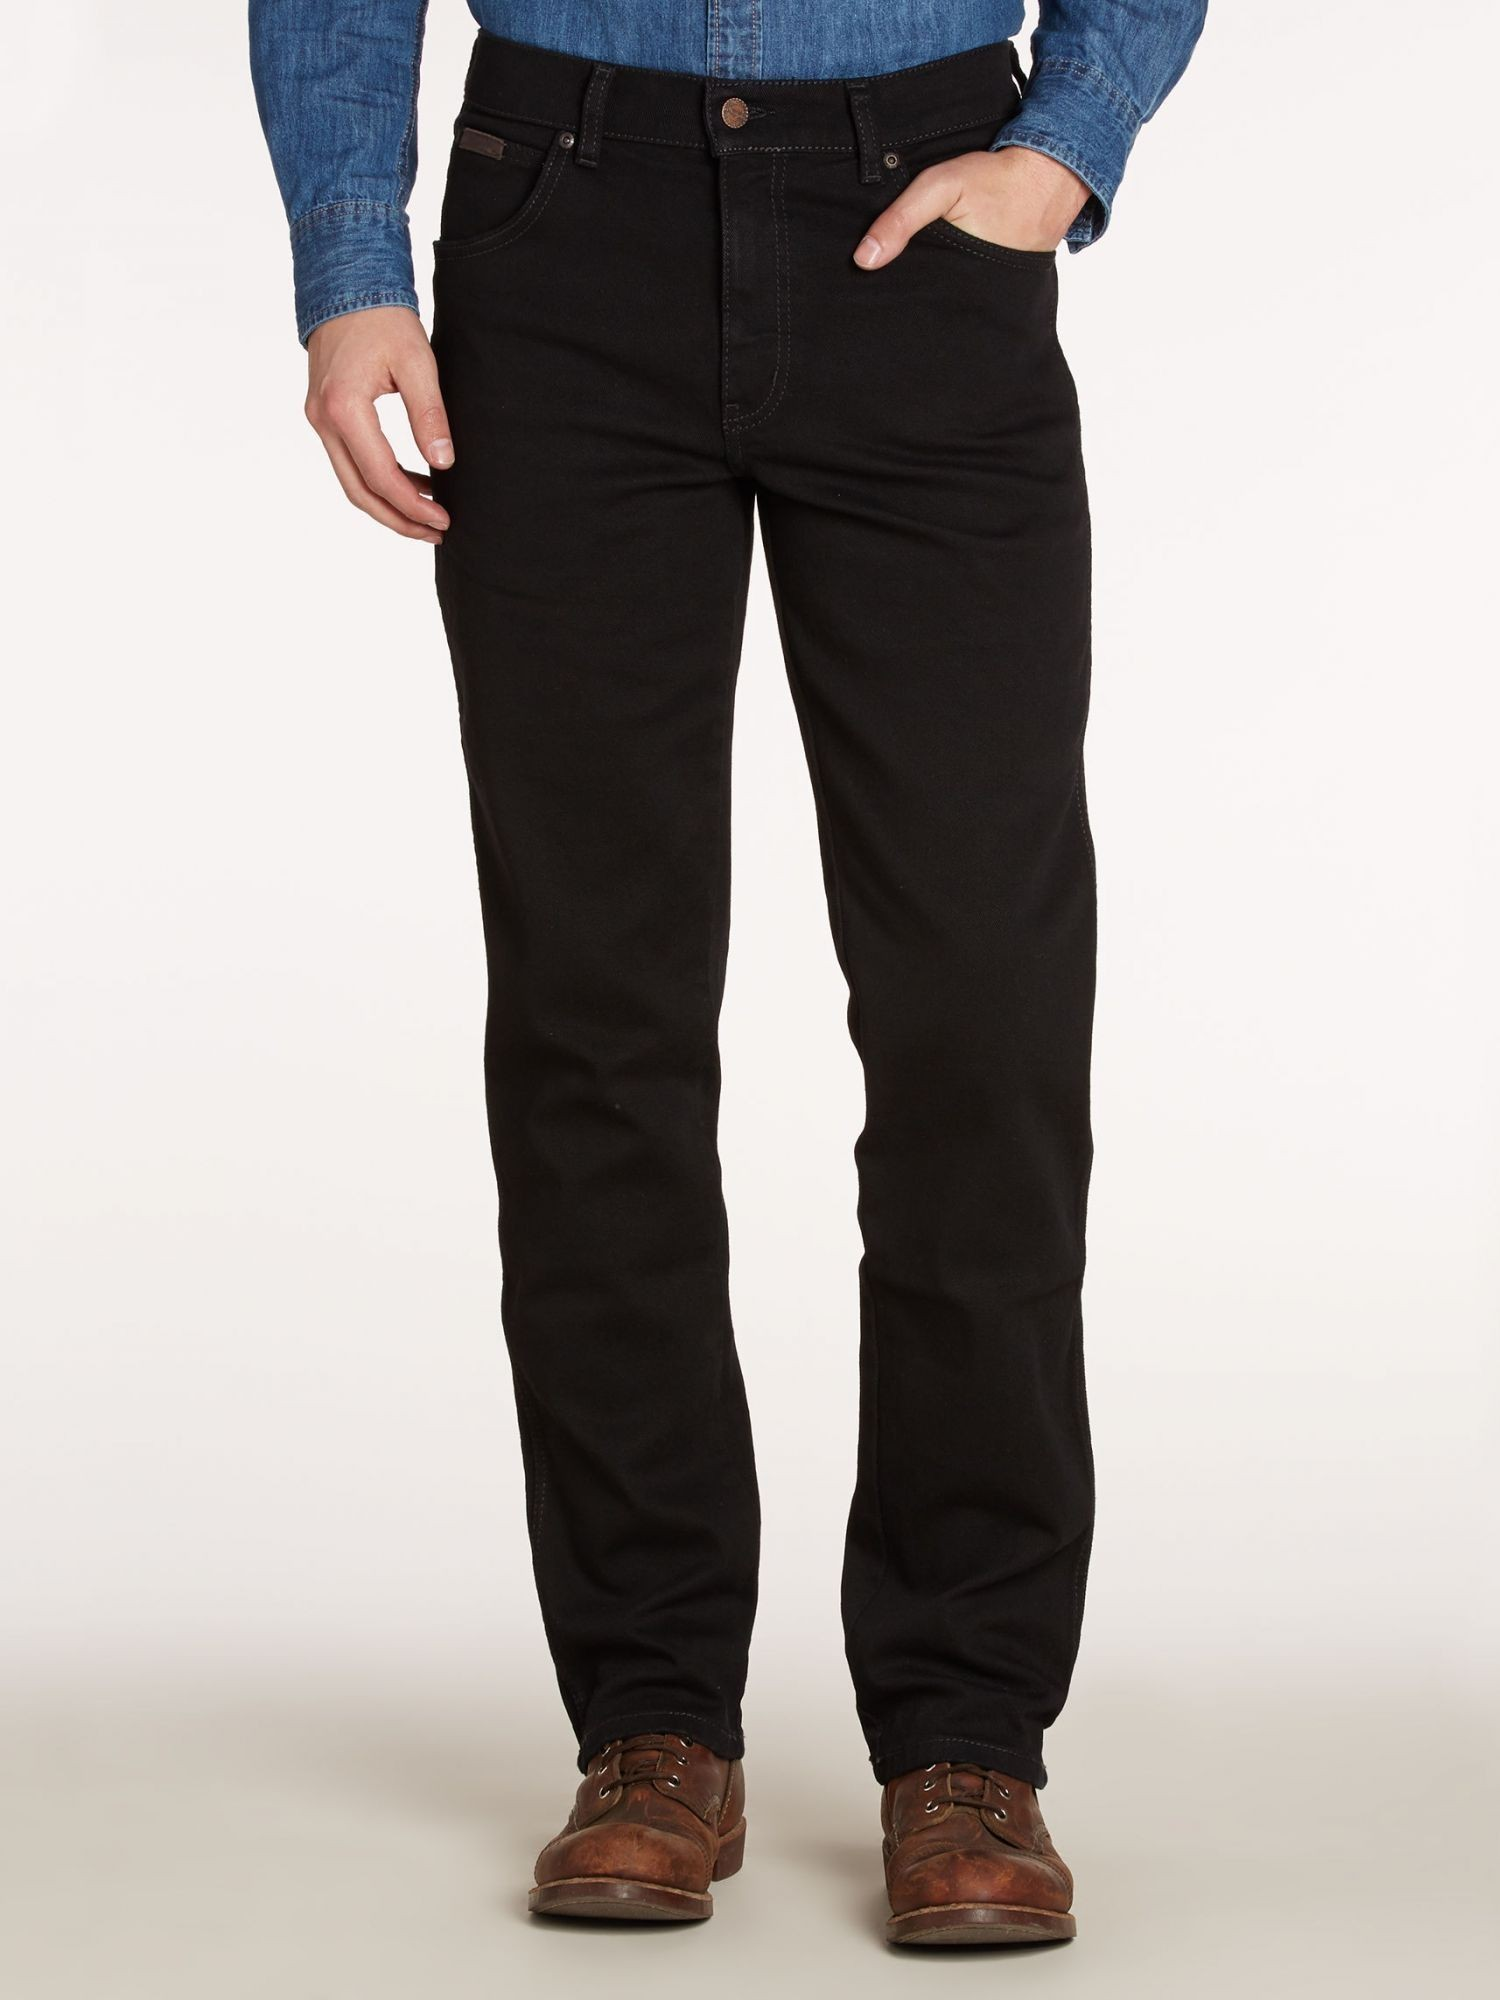 Wrangler Texas black